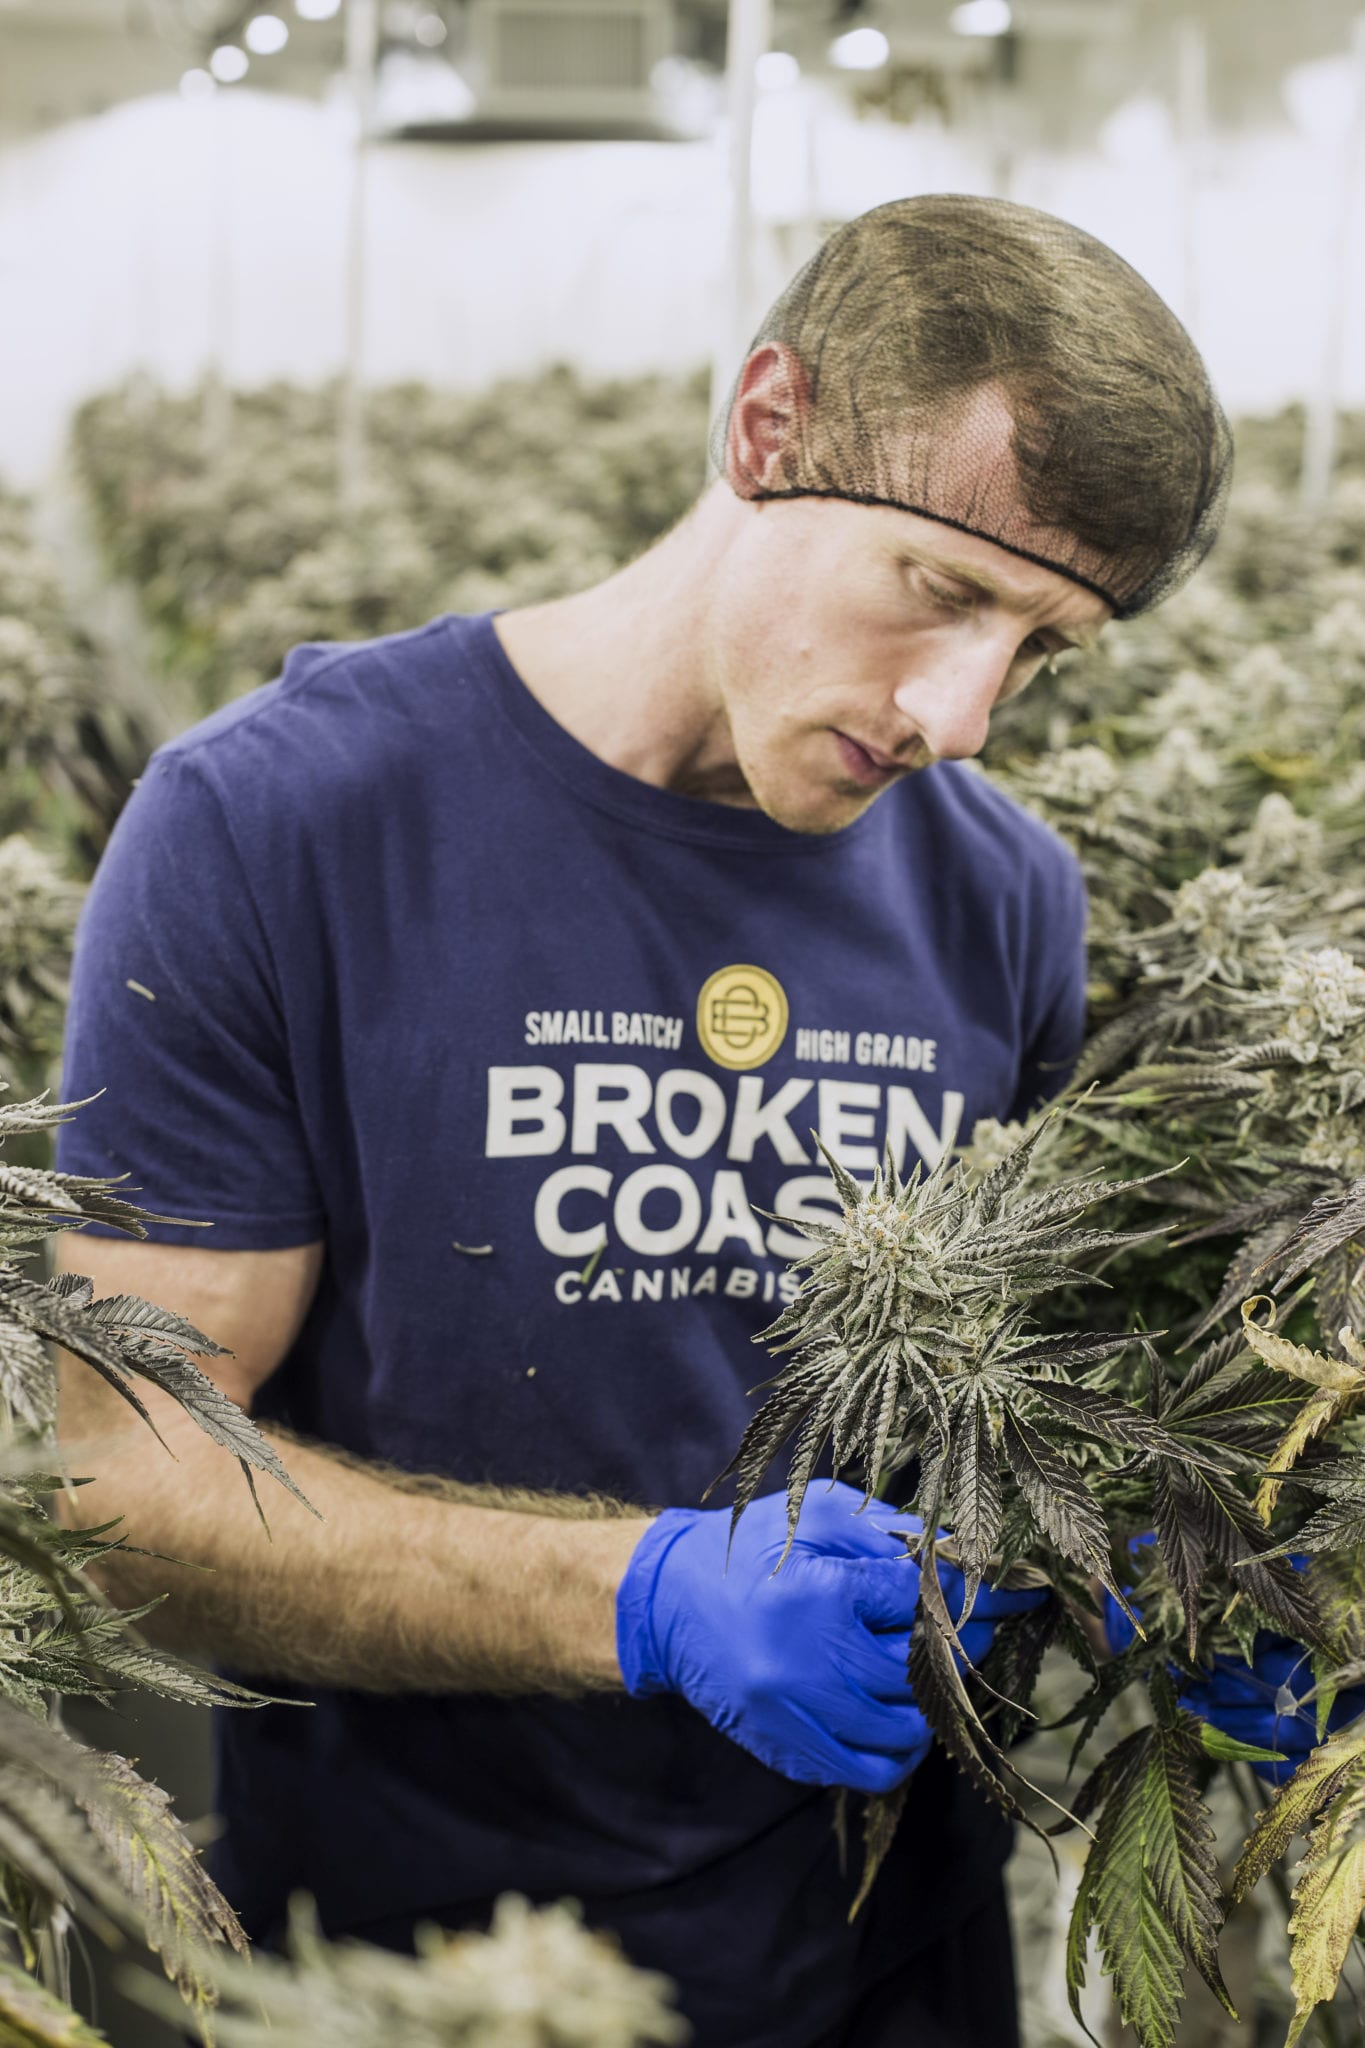 'No way to compromise on quality' - a conversation with Broken Coast's Kevin Anderson - portrait